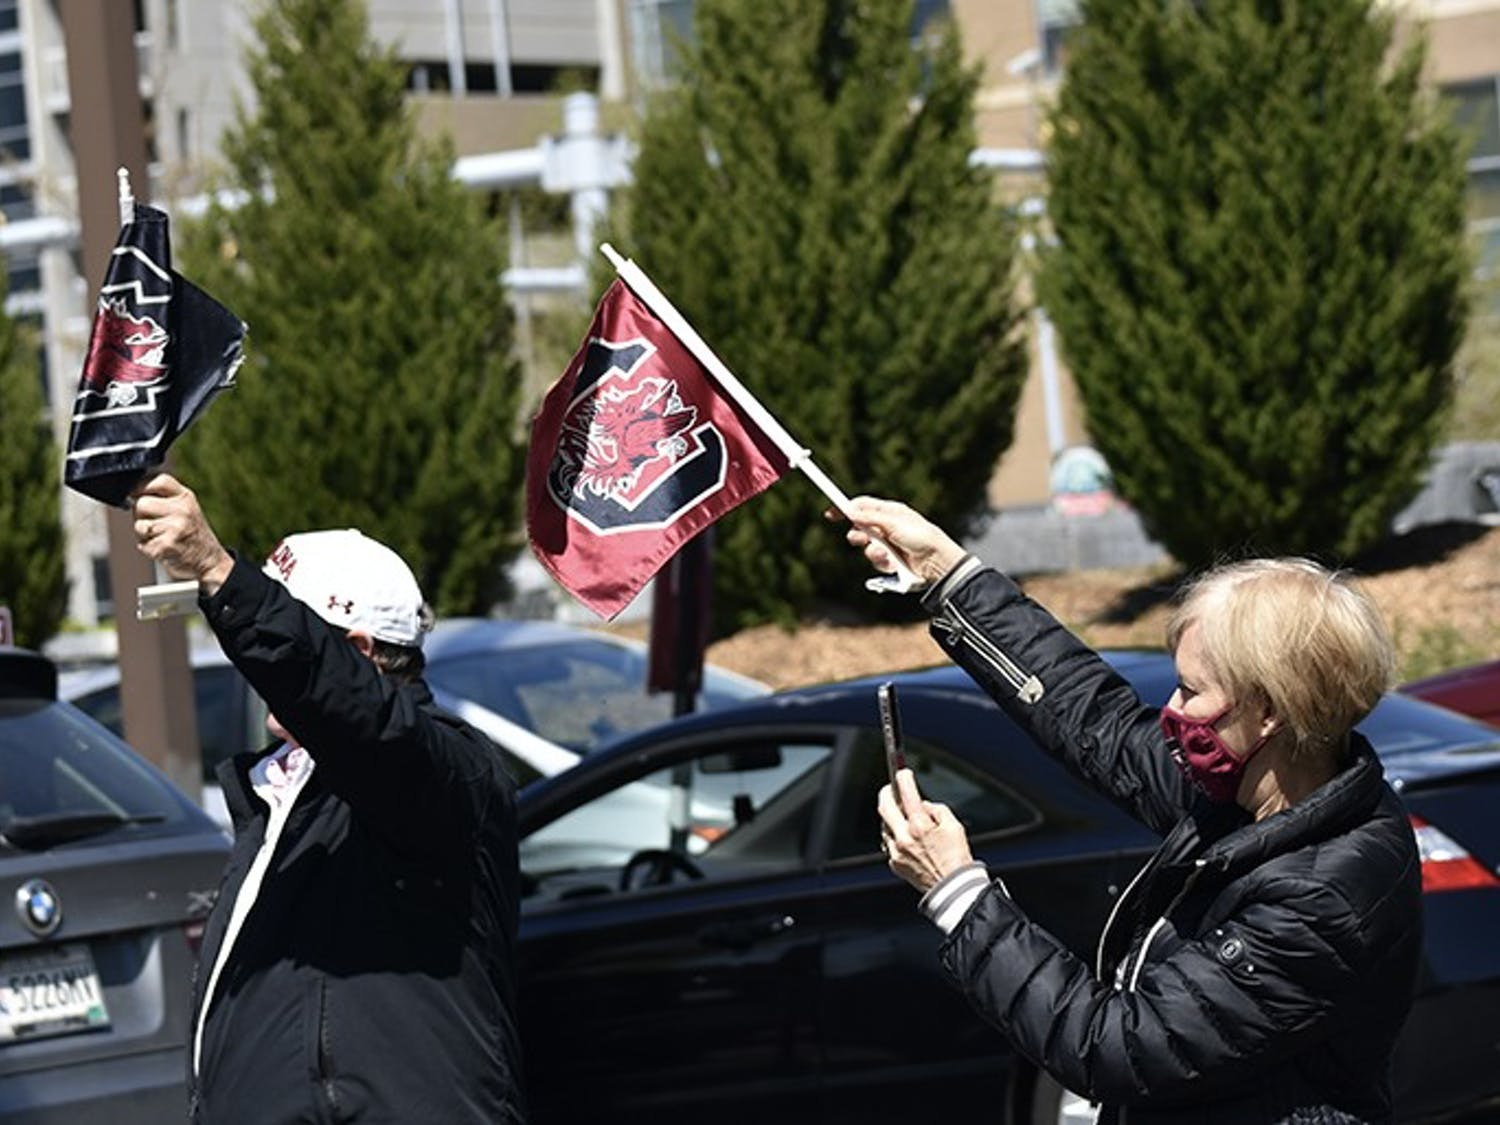 Two fans wave Gamecock flags toward the approaching procession of players.